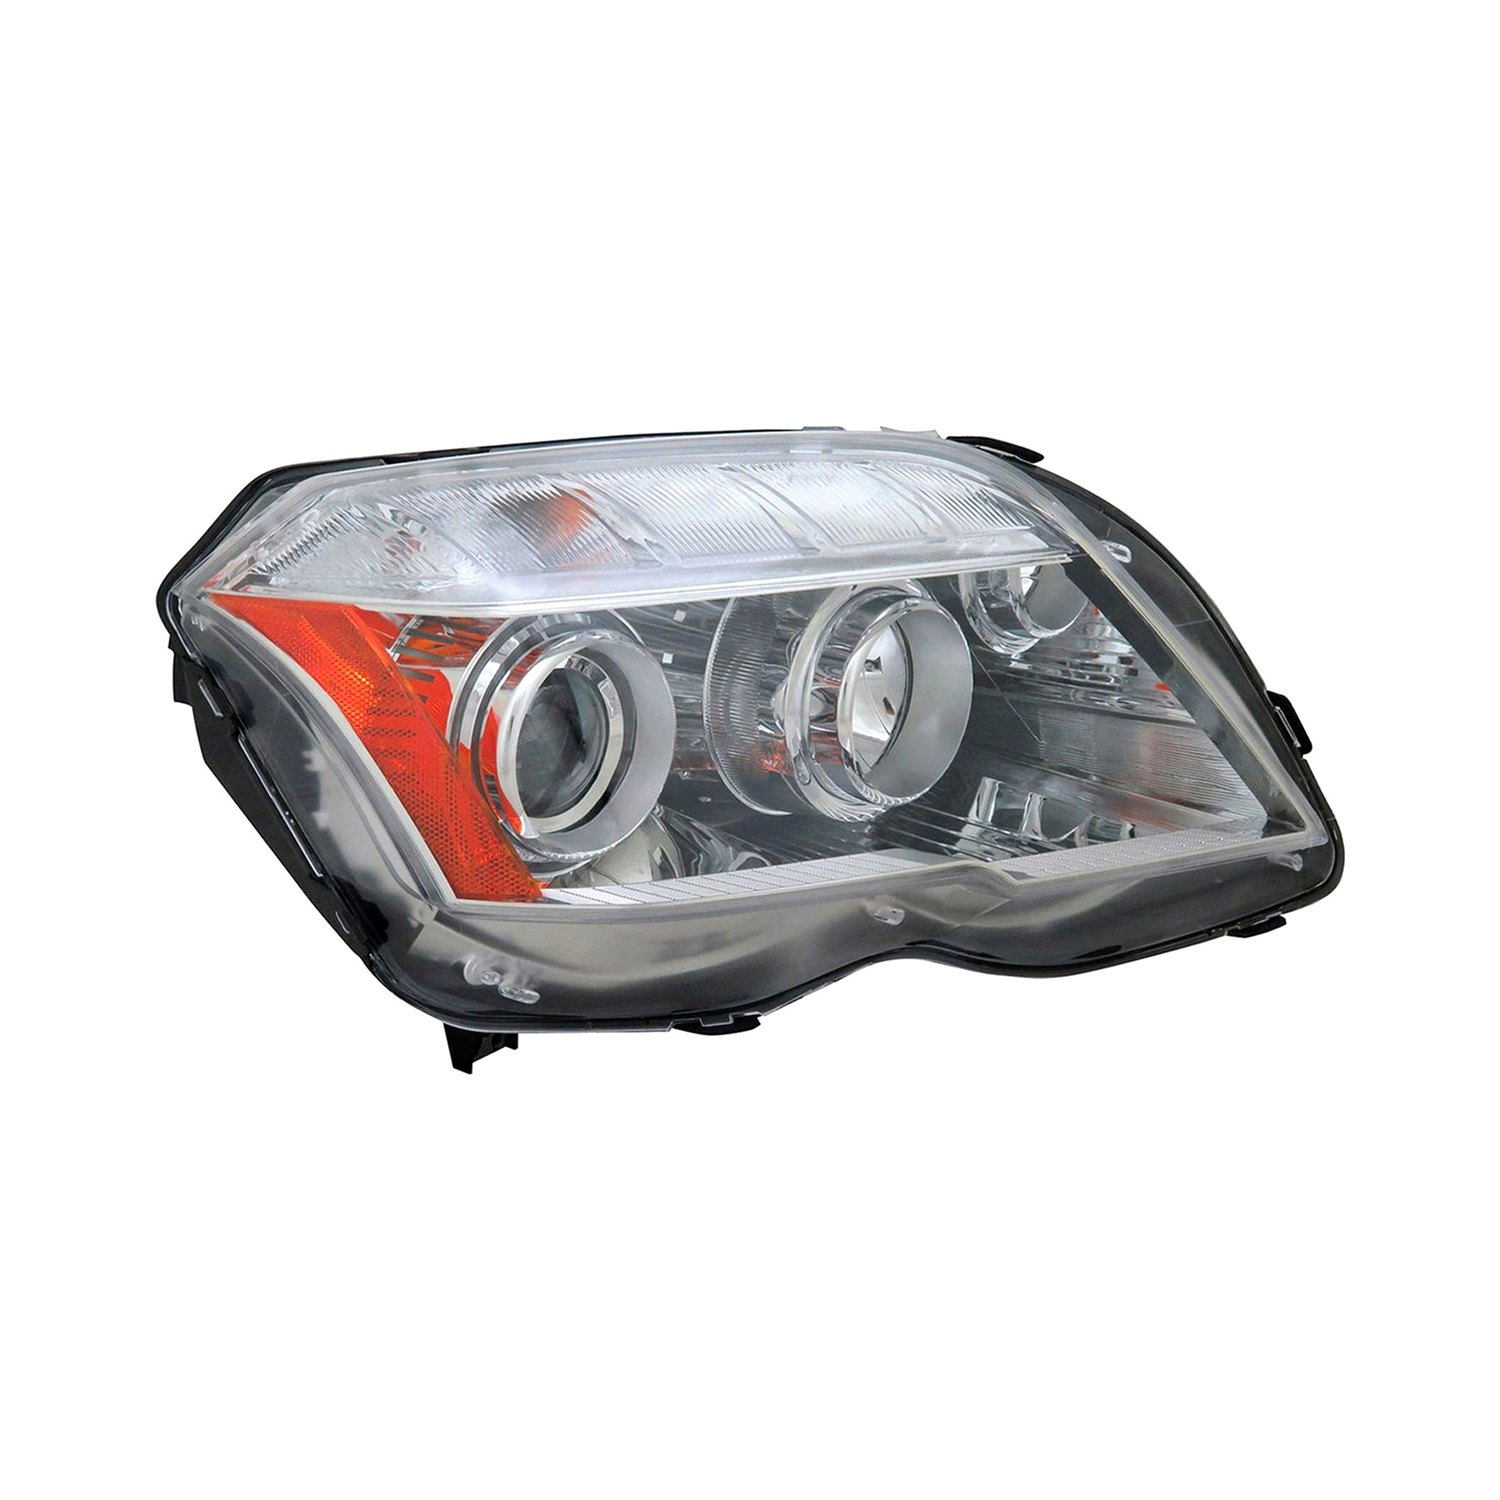 Tyc mercedes glk300 glk350 with factory halogen for Mercedes benz headlight replacement